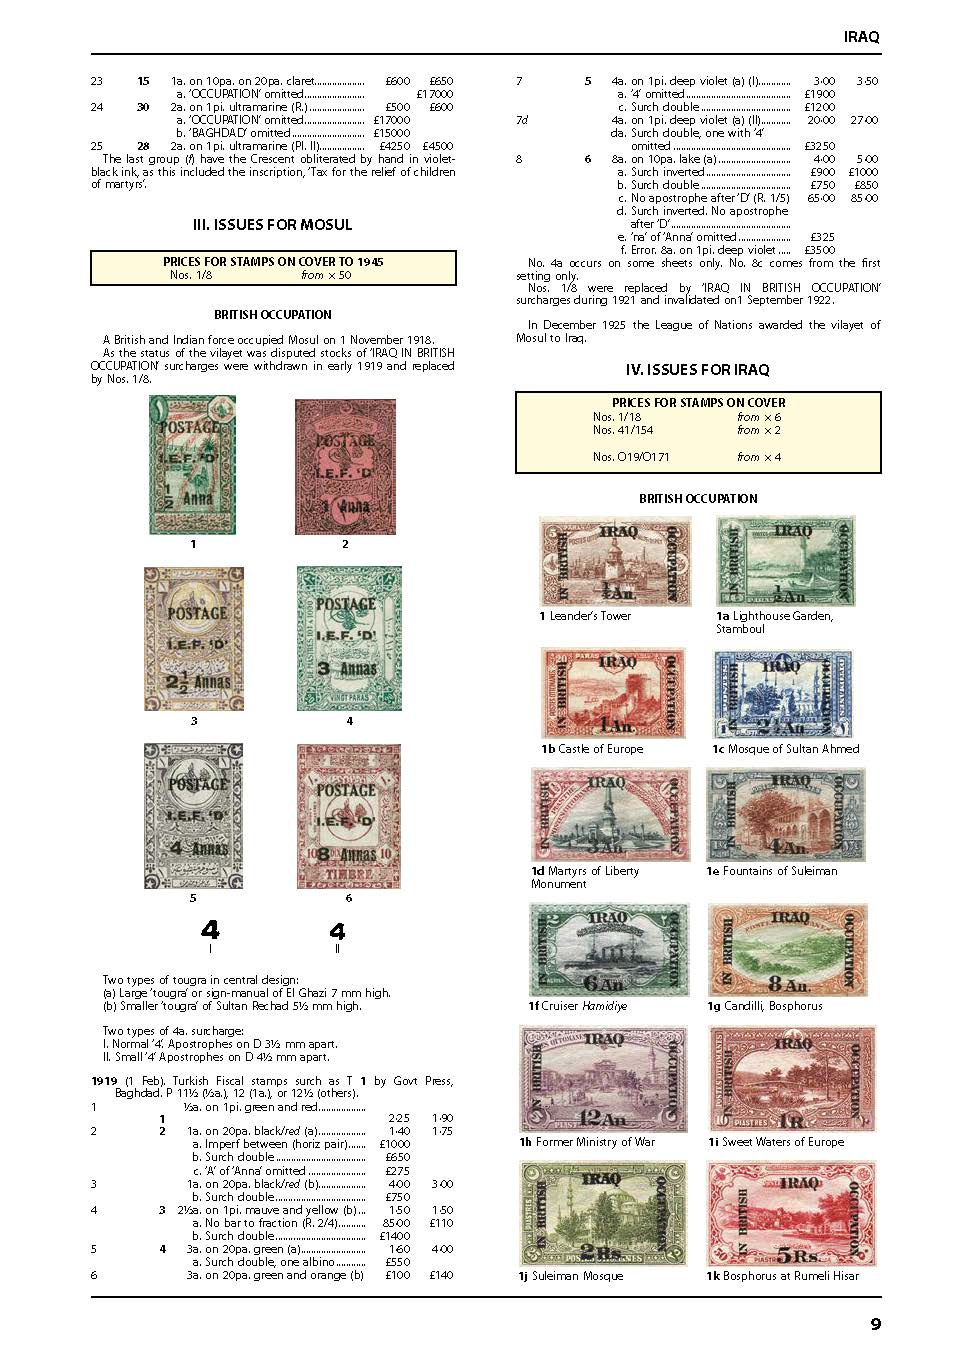 DIGITAL VERSION - Middle East Stamp Catalogue 1st Edition